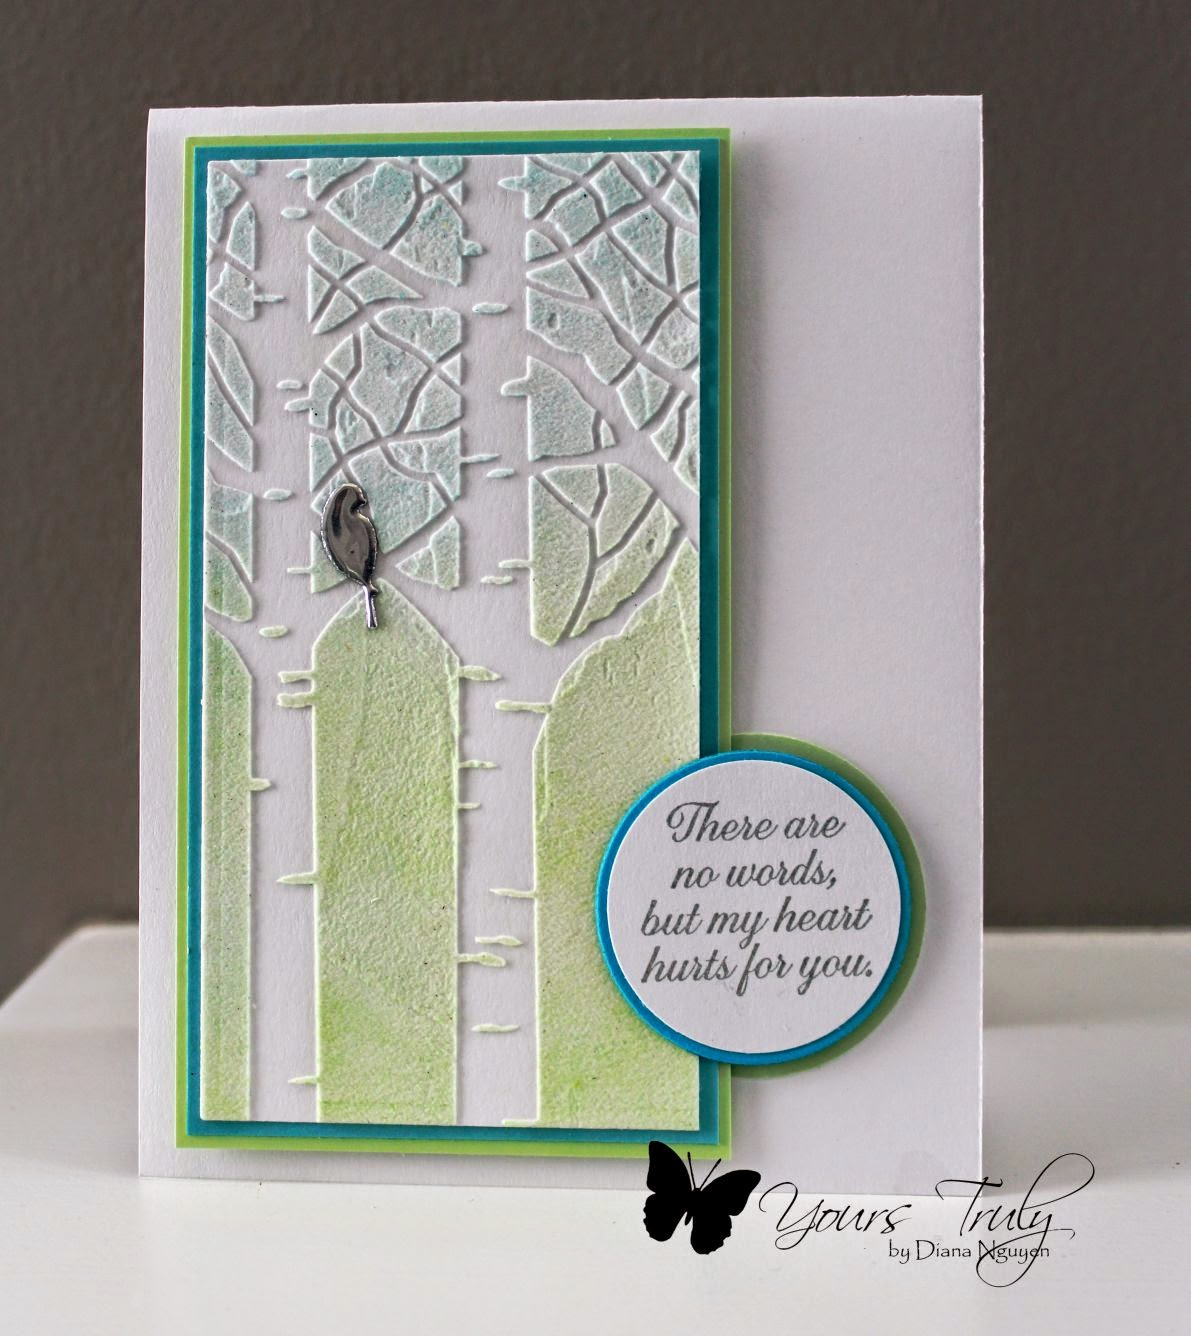 Diana Nguyen, ODBD, No words, sympathy card, Memory Box Garden birch trees stencil, stenciling, nesting birds